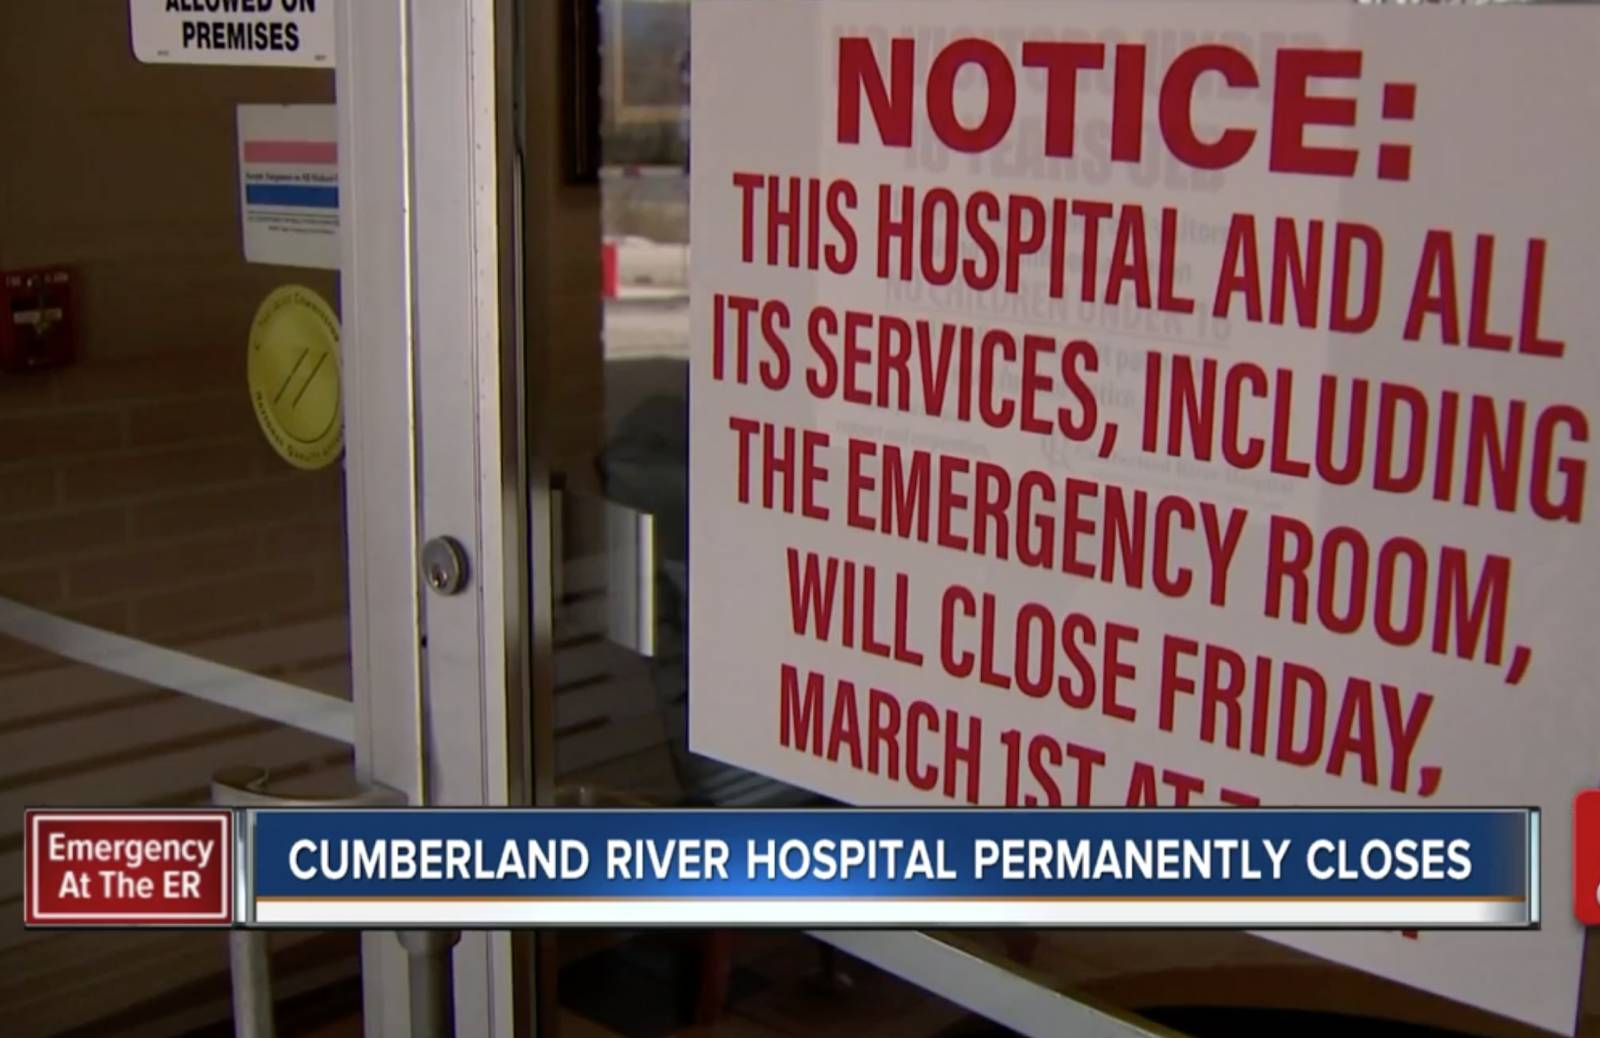 Hospital closures create havoc in rural Tennessee